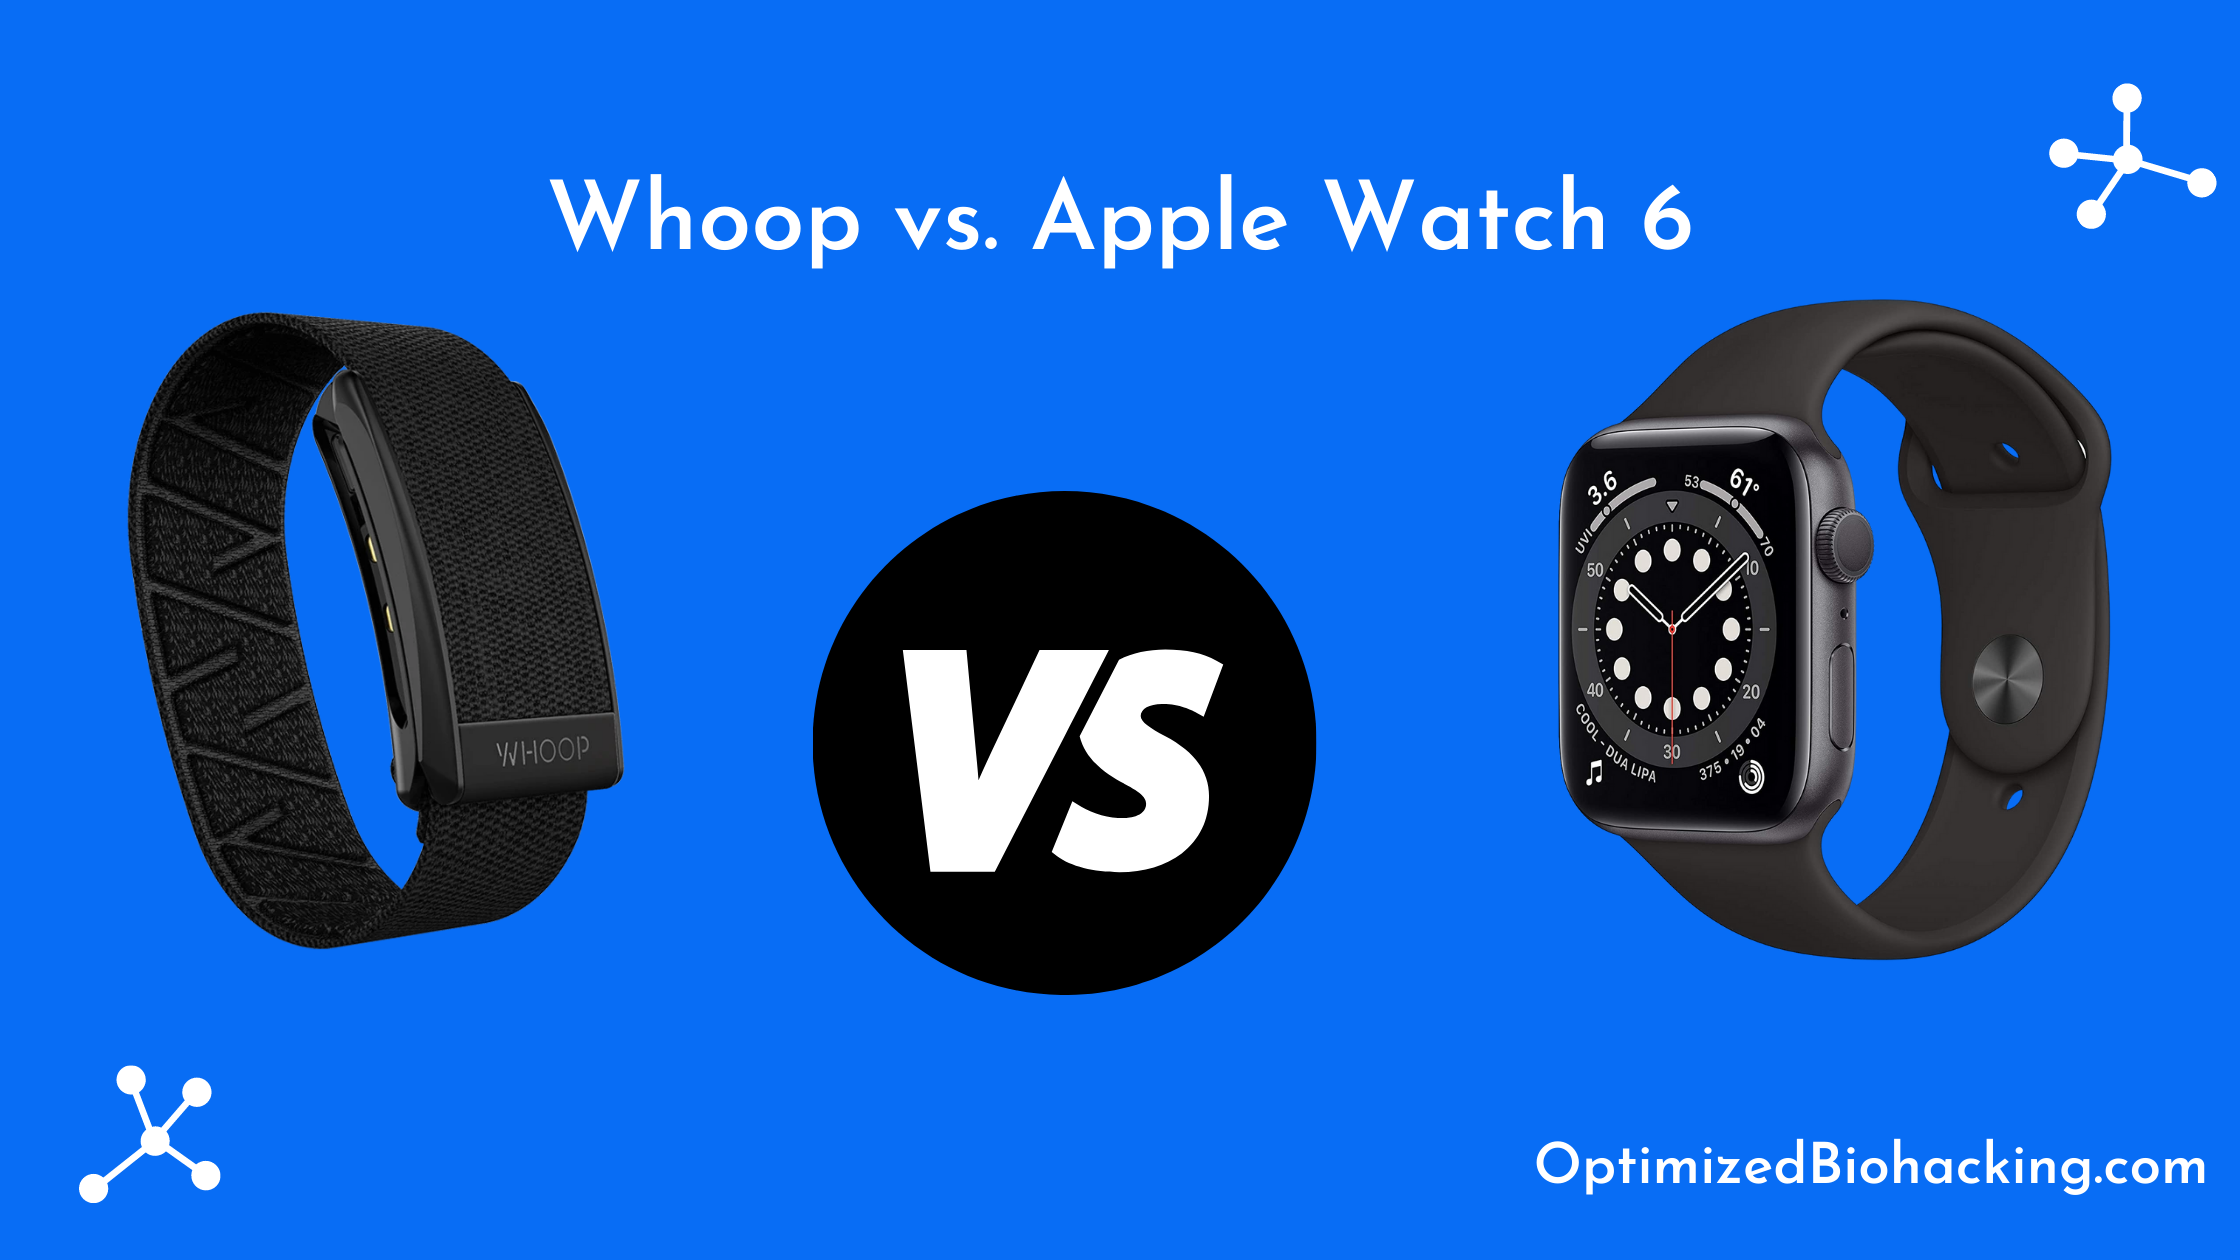 Whoop vs Apple Watch